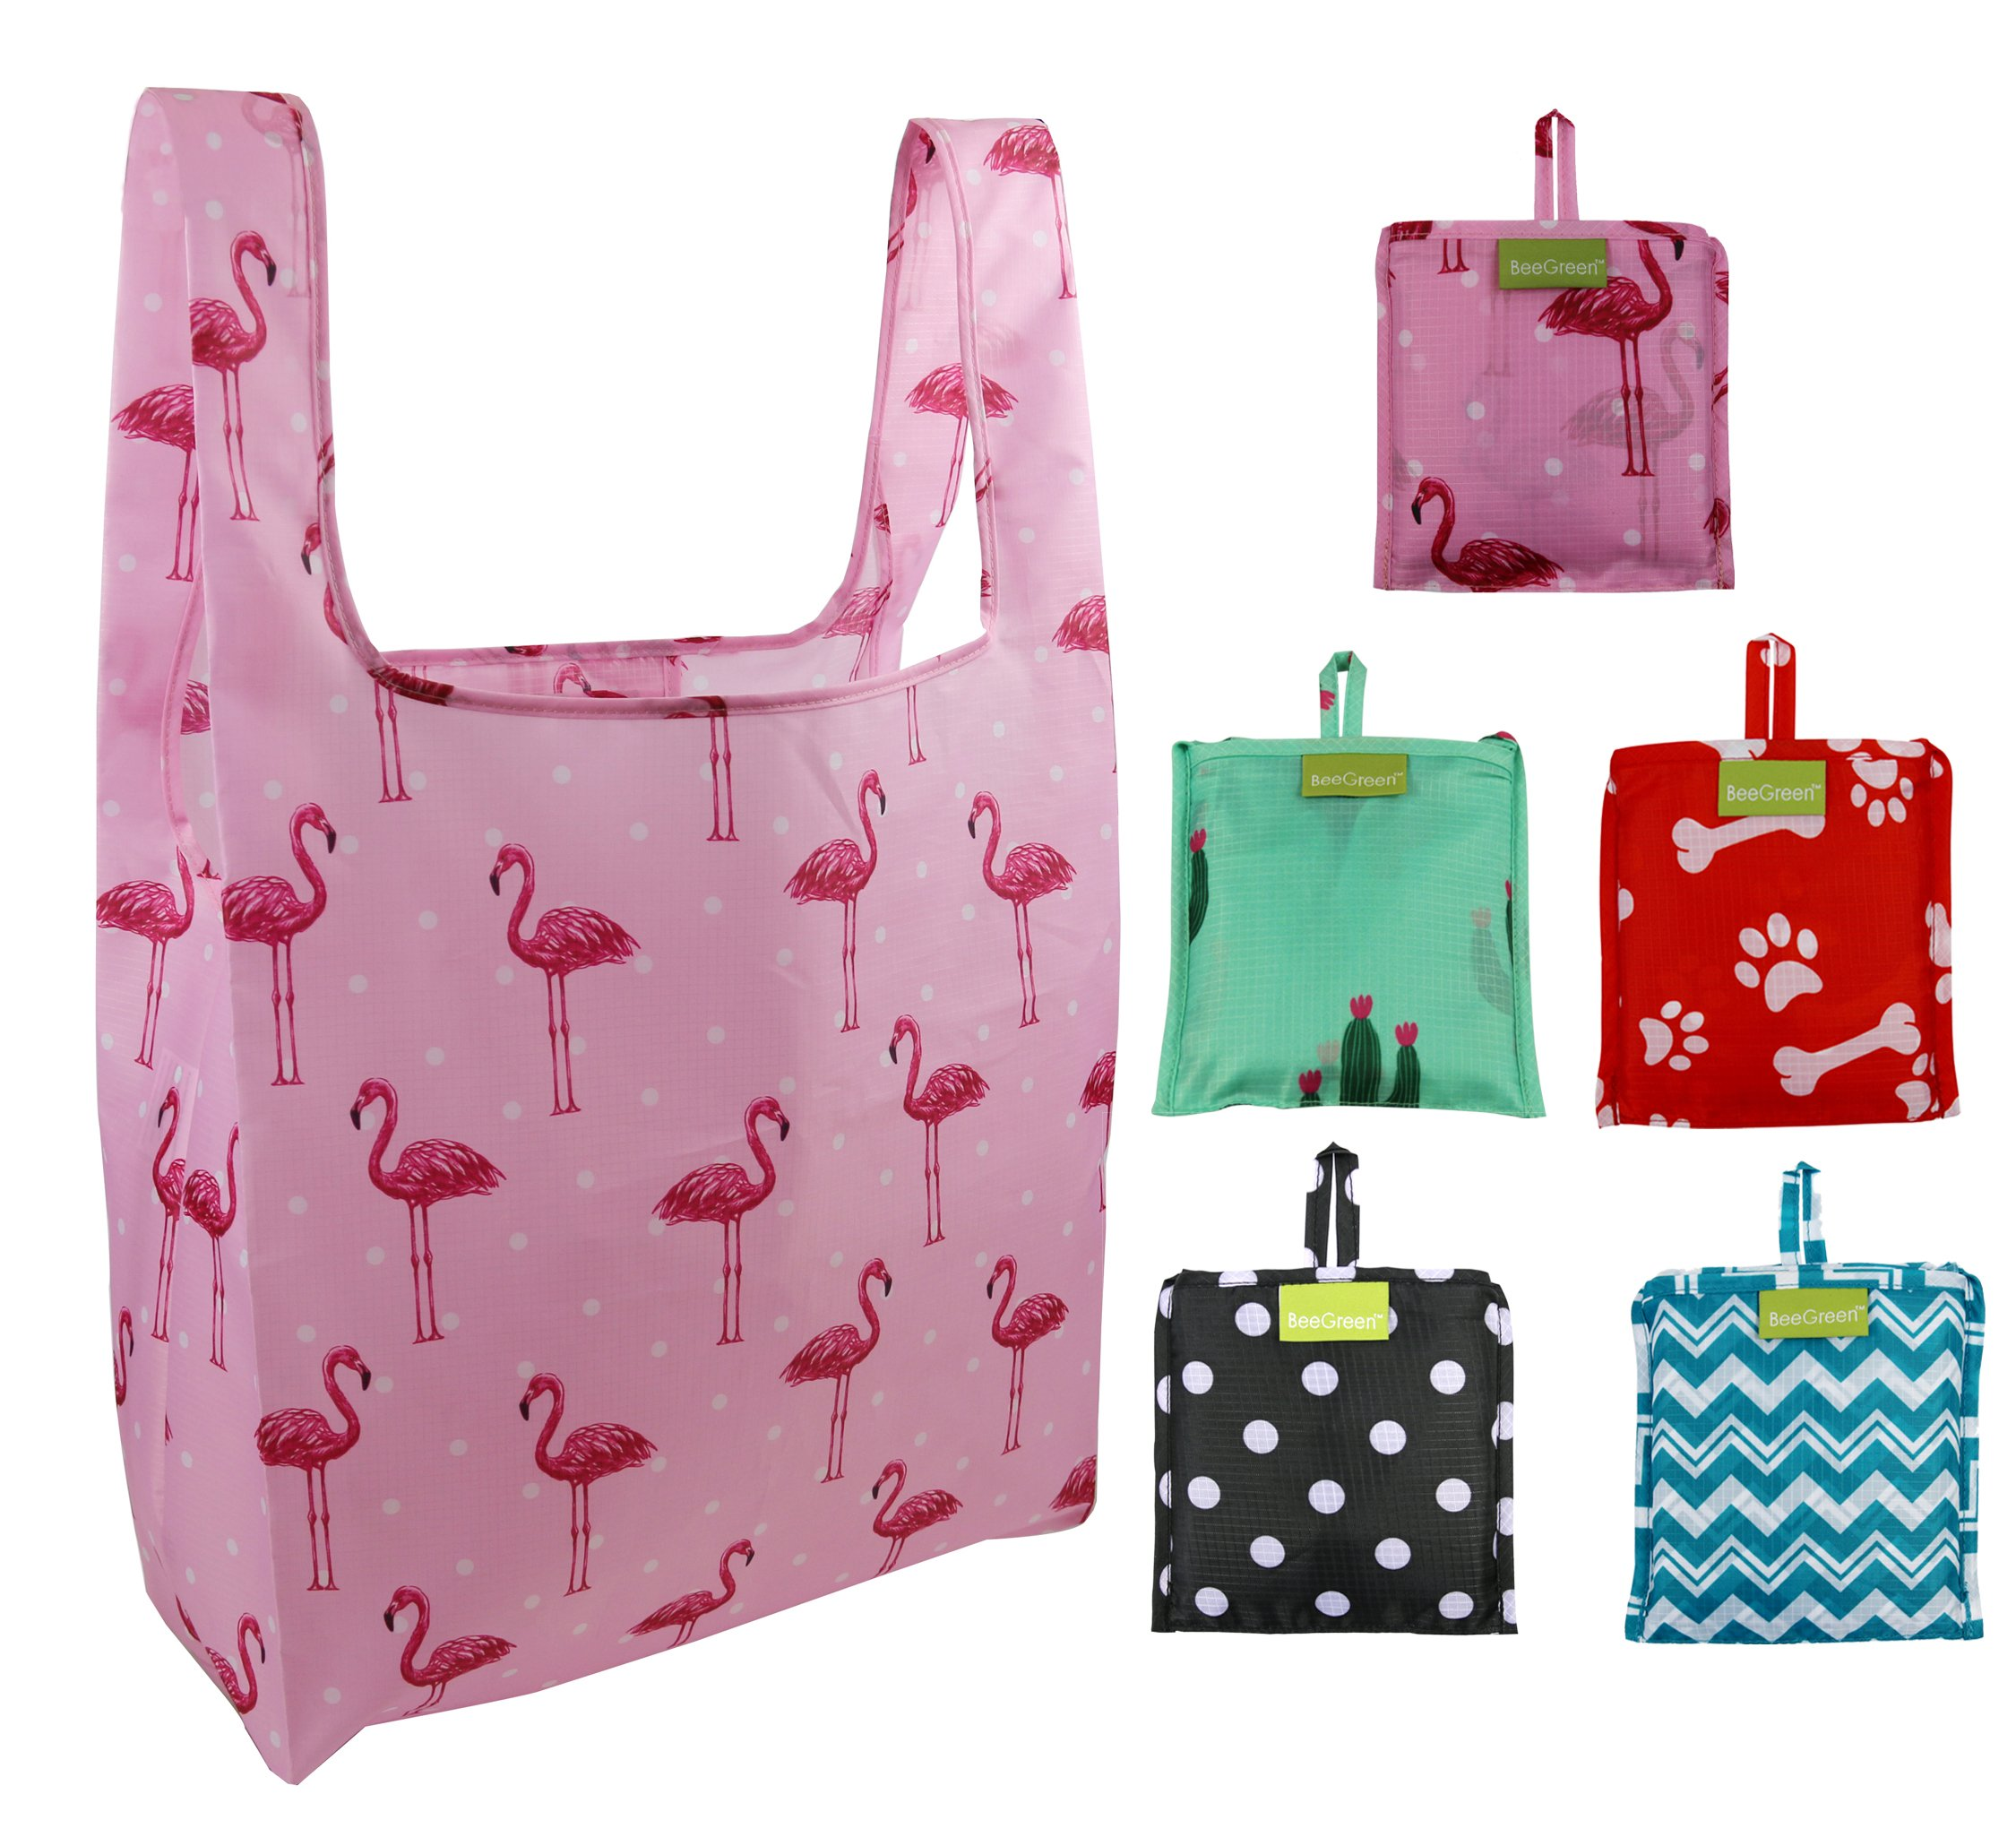 Foldable Reusable Grocery Bags 5 Cute Designs, Folding Shopping Tote Bag Fits in Pocket, Eco-Friendly Ripstop Nylon, Waterproof and Machine Washable